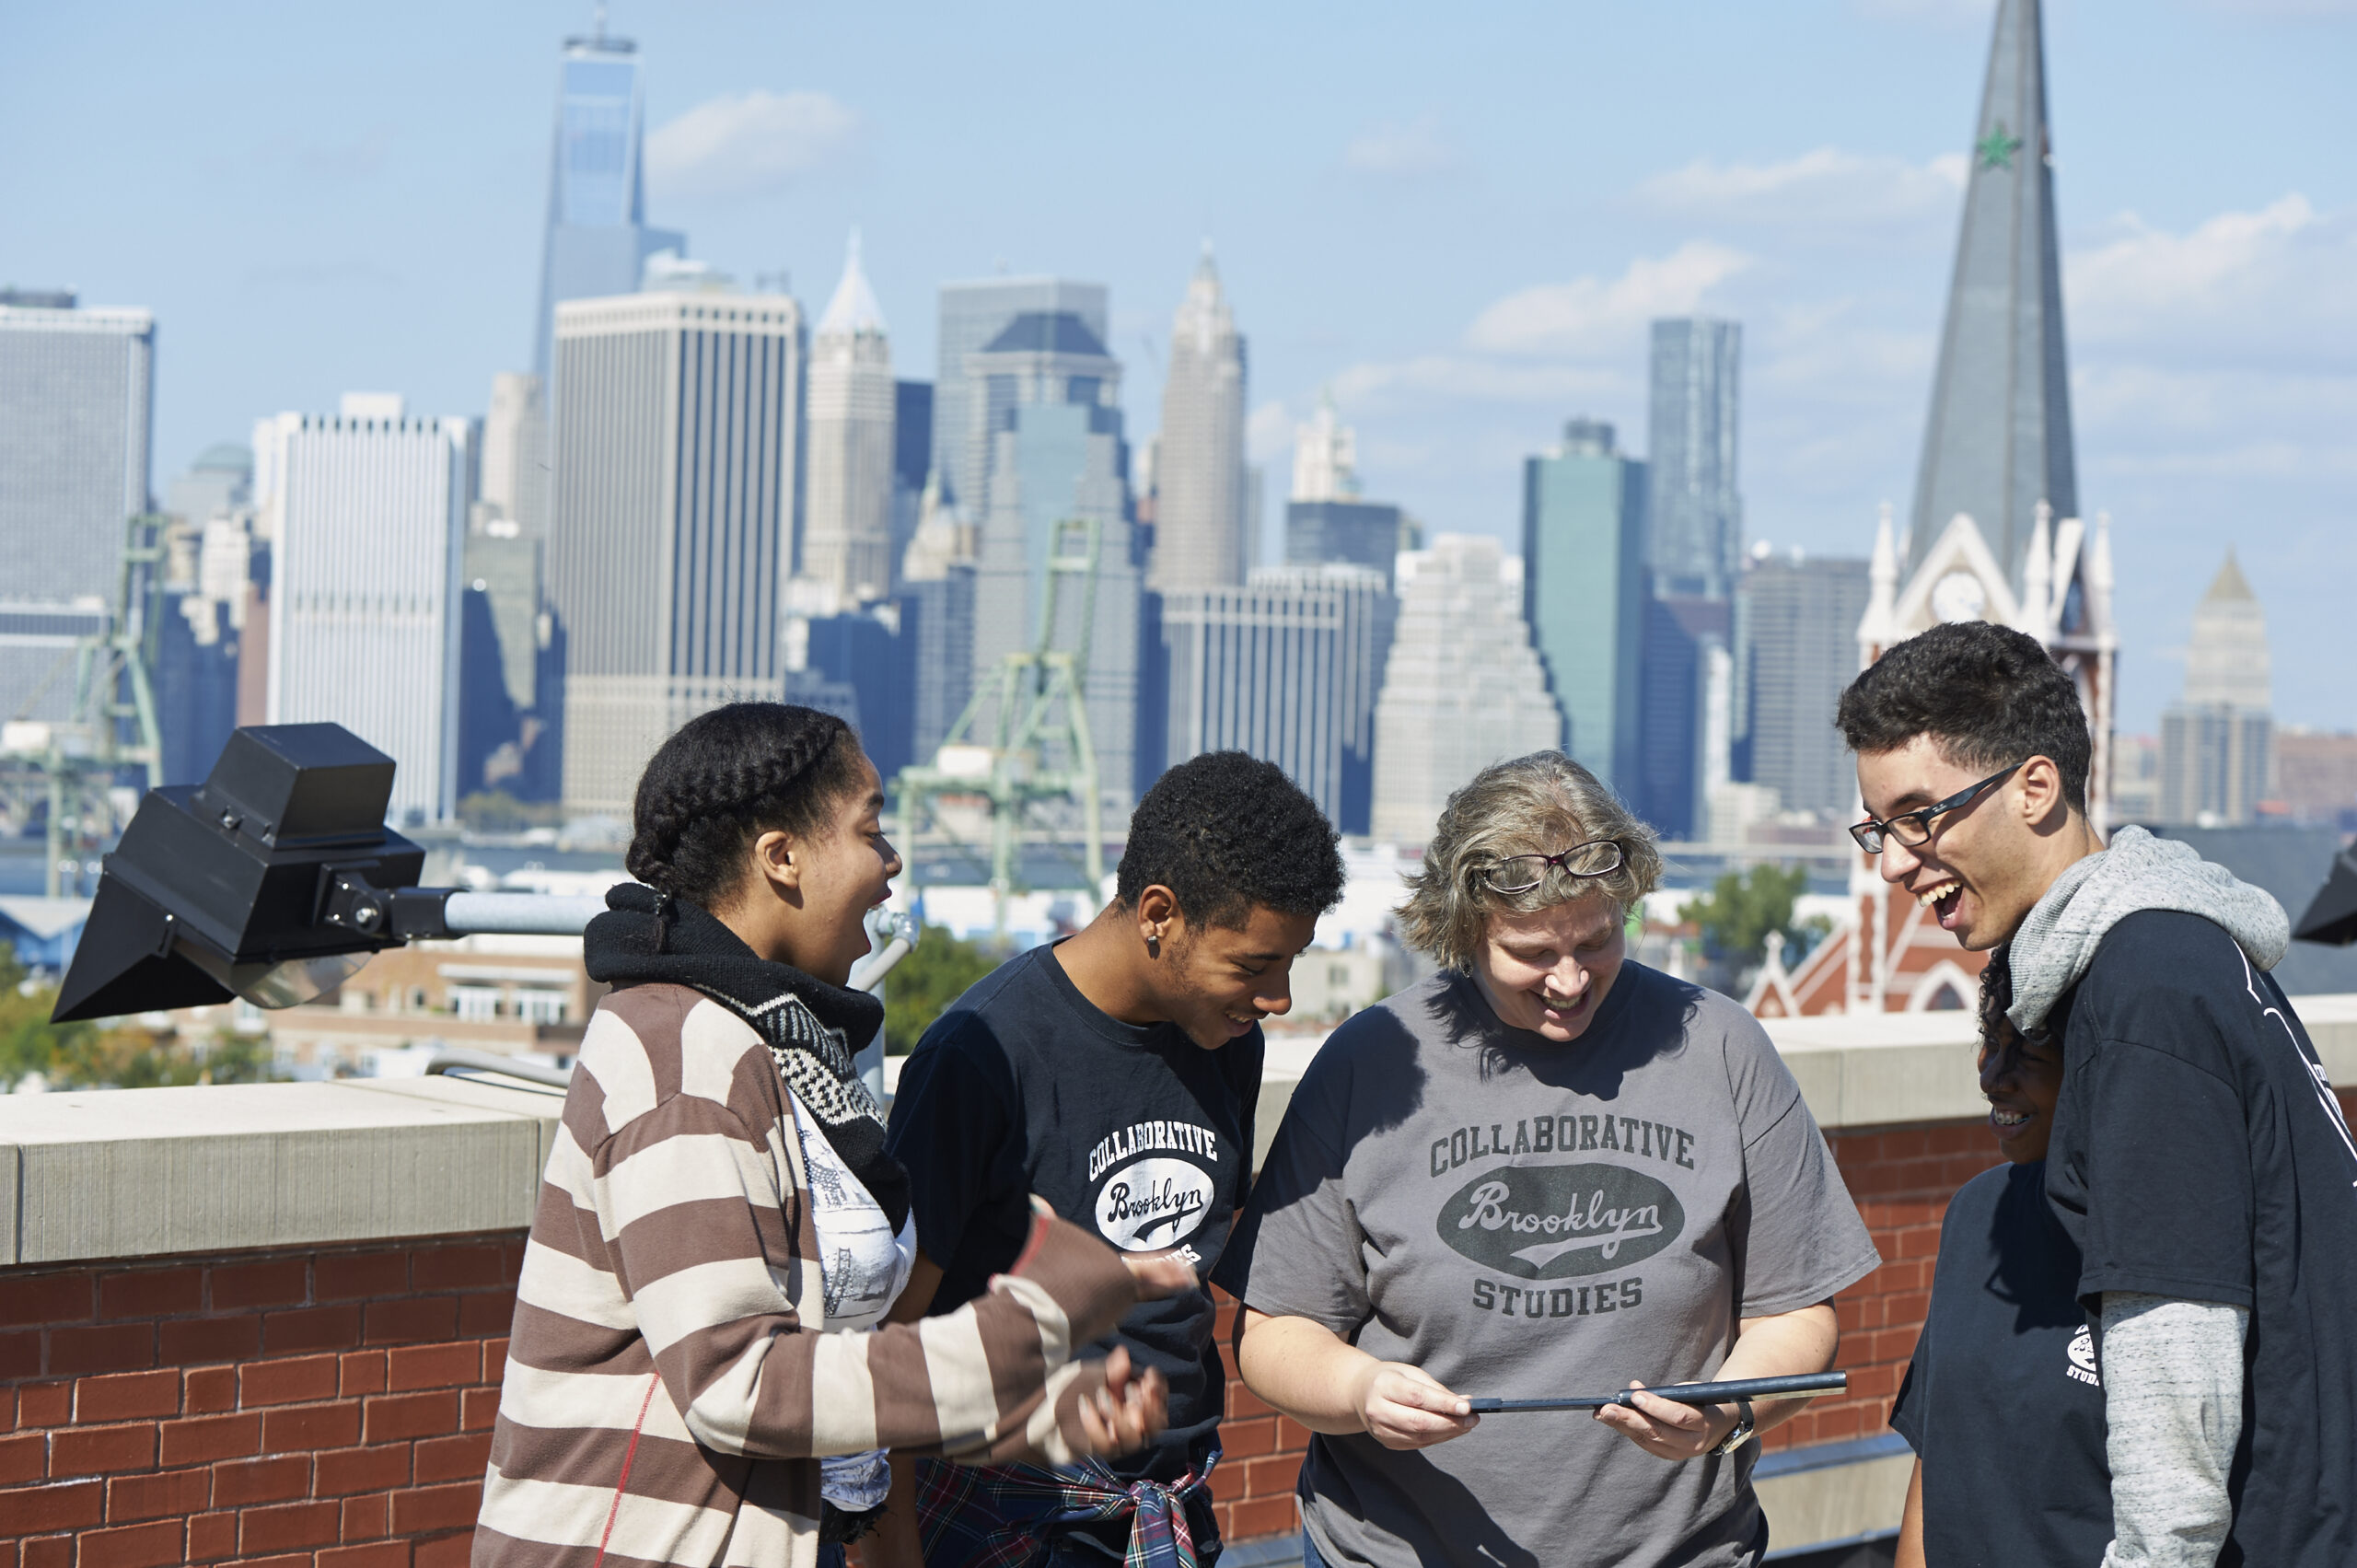 Students at Brooklyn Collaborative learn outside.